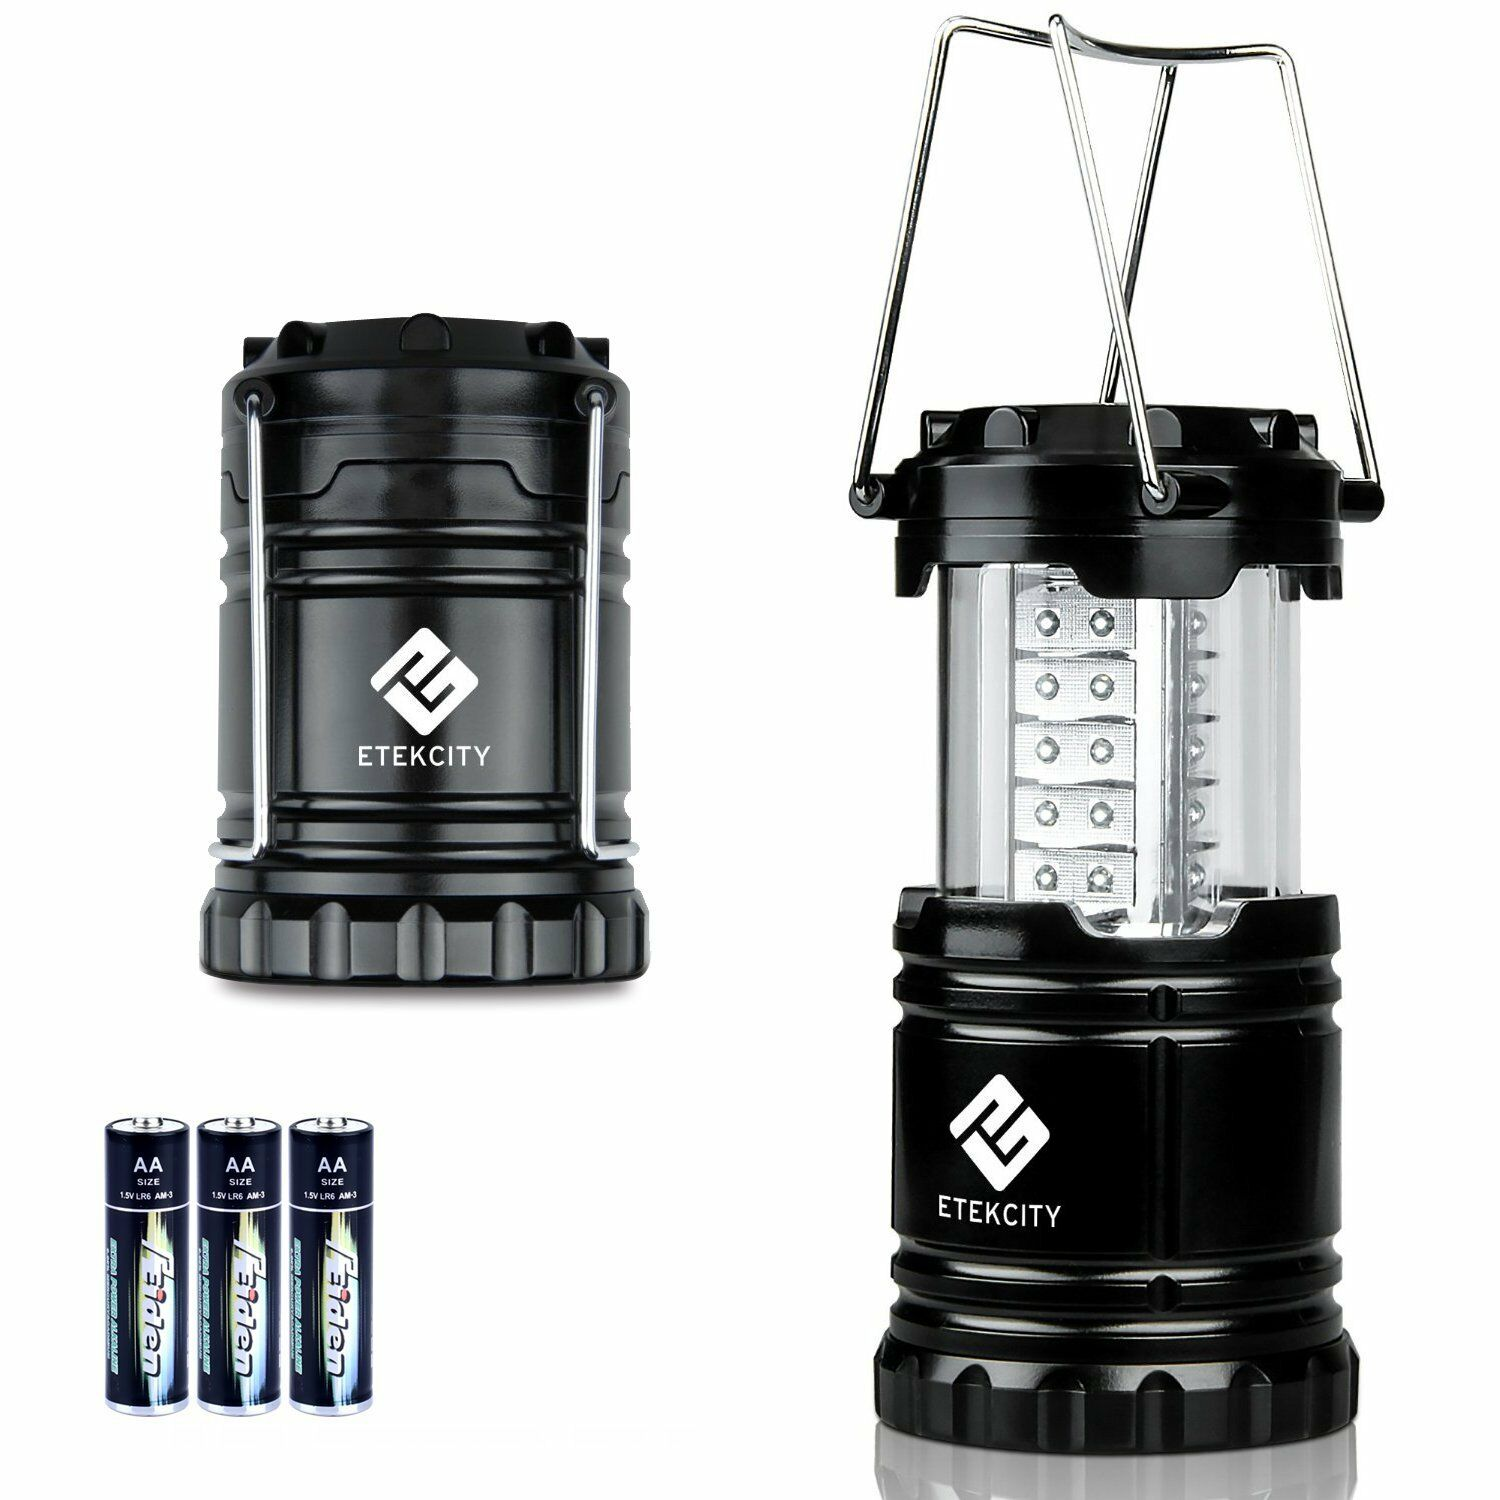 Portable Collapsible 30 Led Flashlight Camping Lantern With 3 Aa Simple Torch Using Single 15v Battery Norton Secured Powered By Verisign